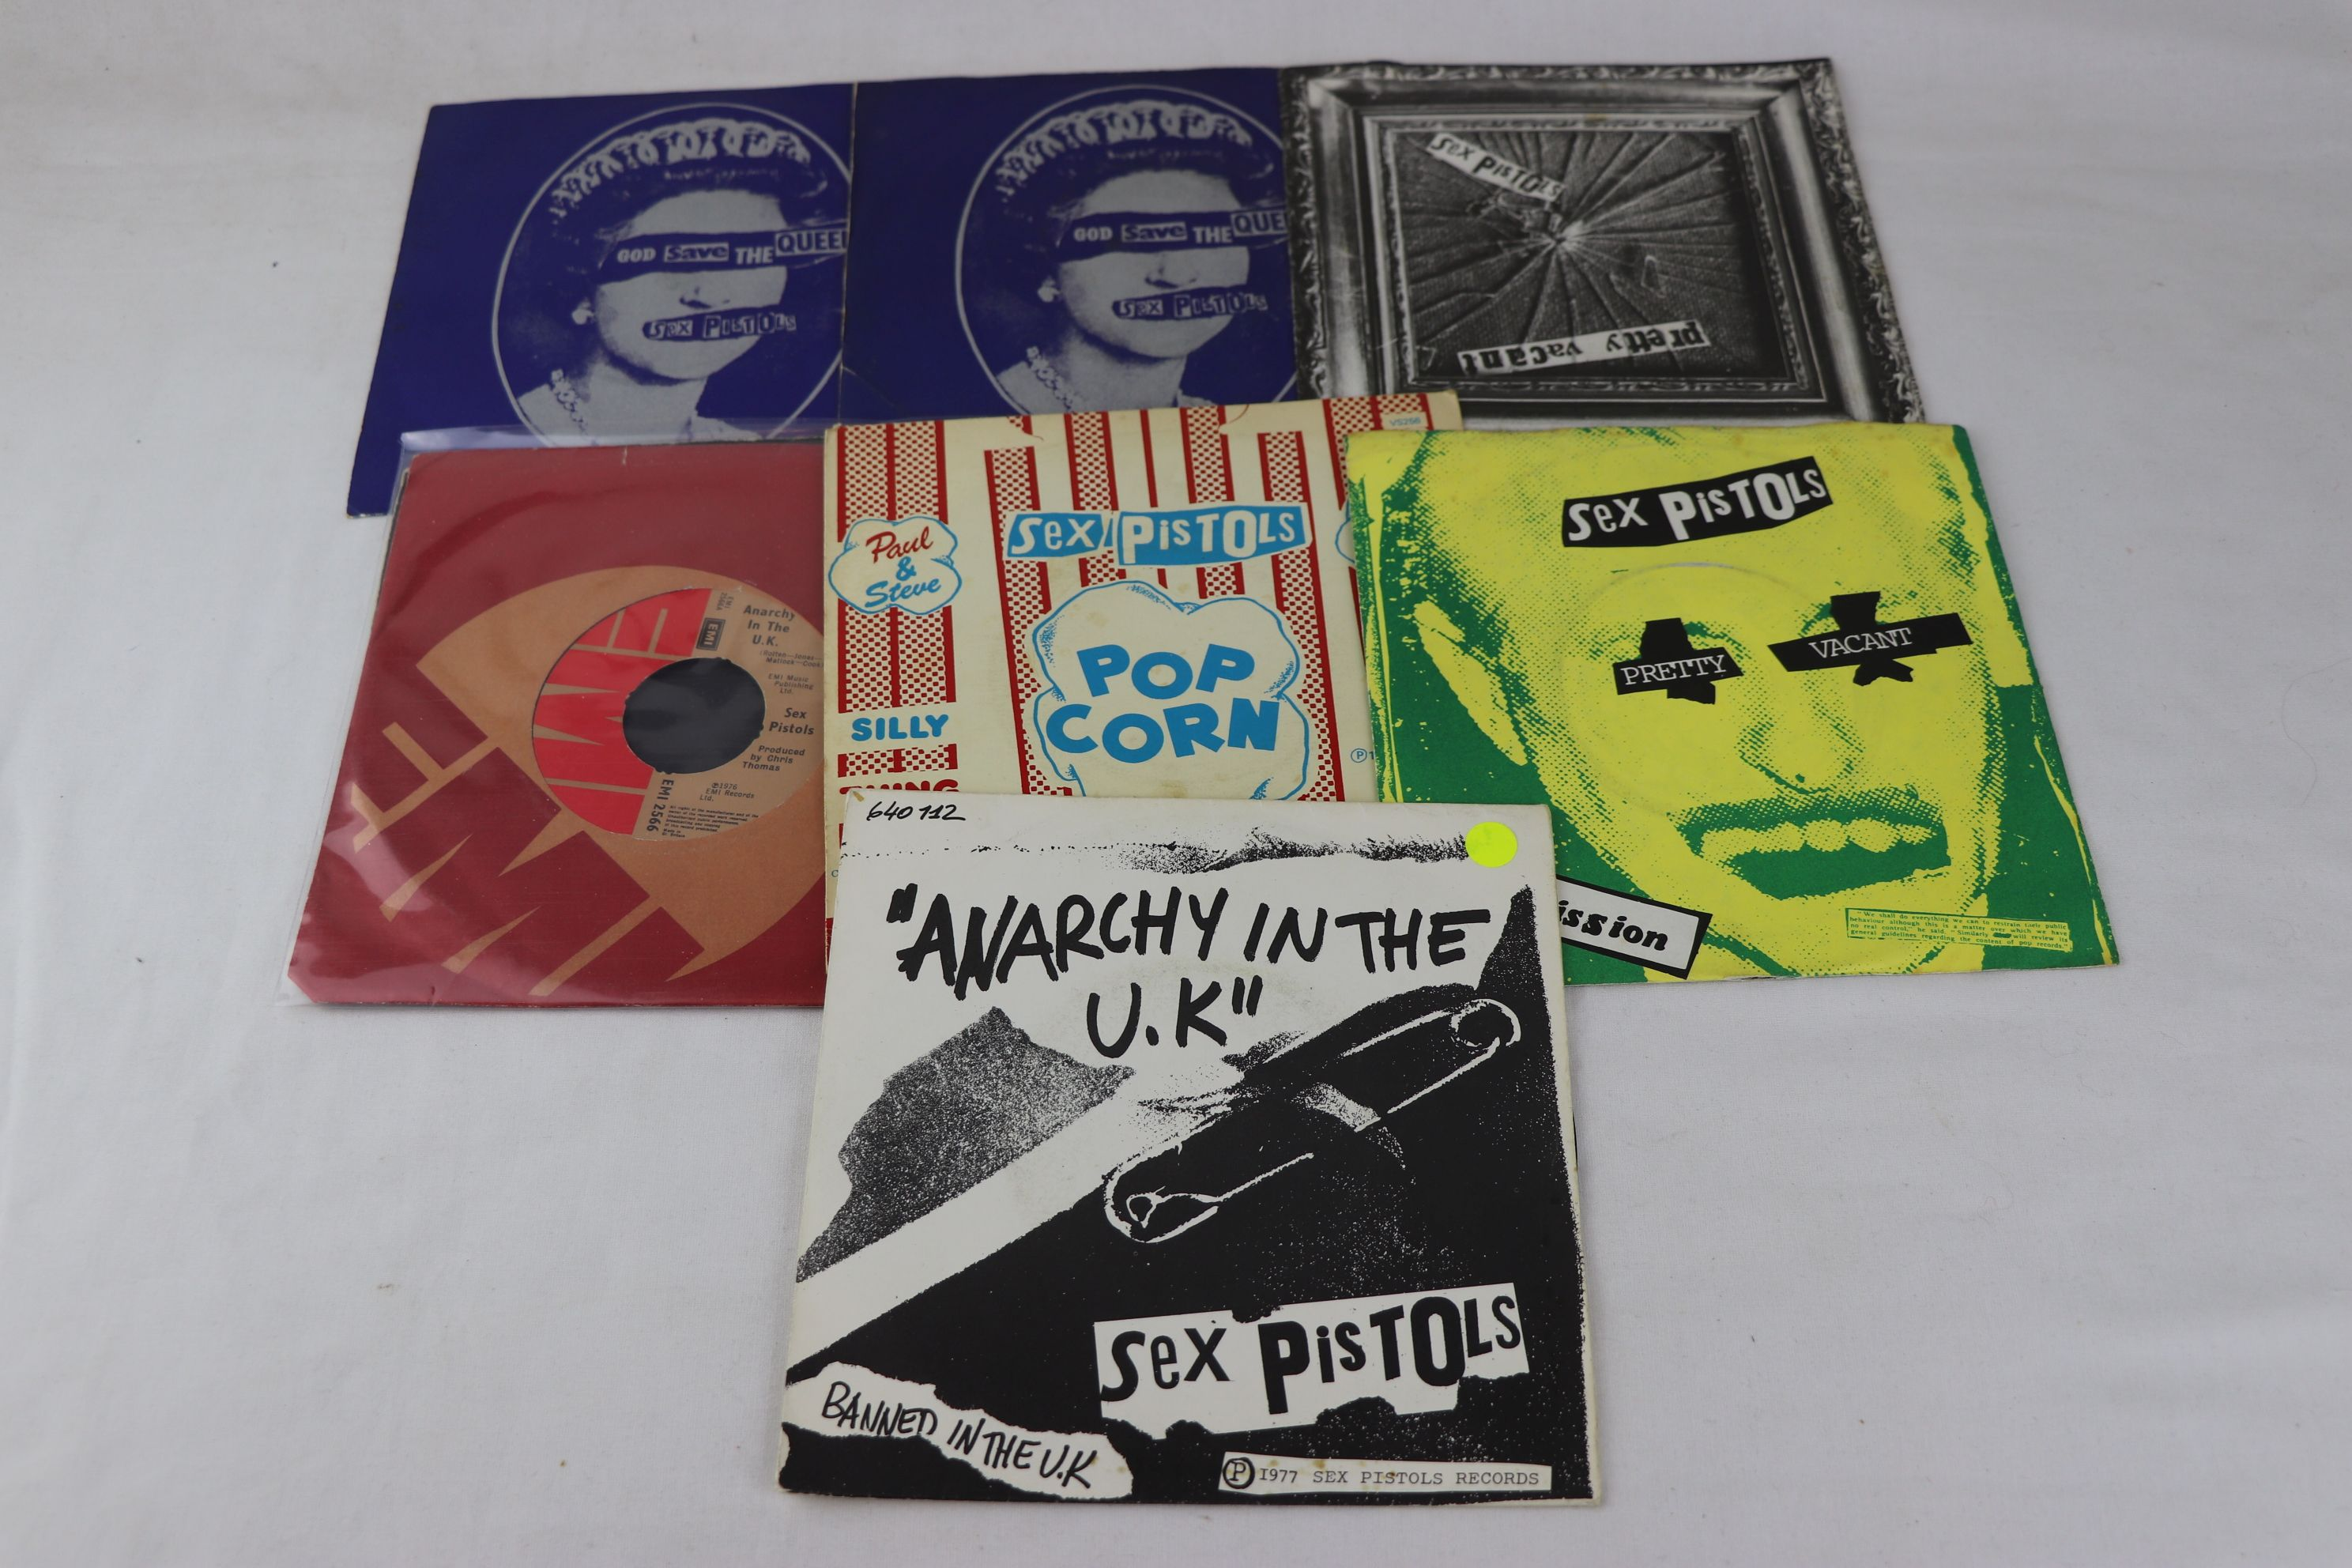 PUNK - SEX PISTOLS - PACK OF 7 ORIGINAL PRESSING SINGLES. 1. GOD SAVE THE QUEEN, 1977 VIRGIN RECORDS